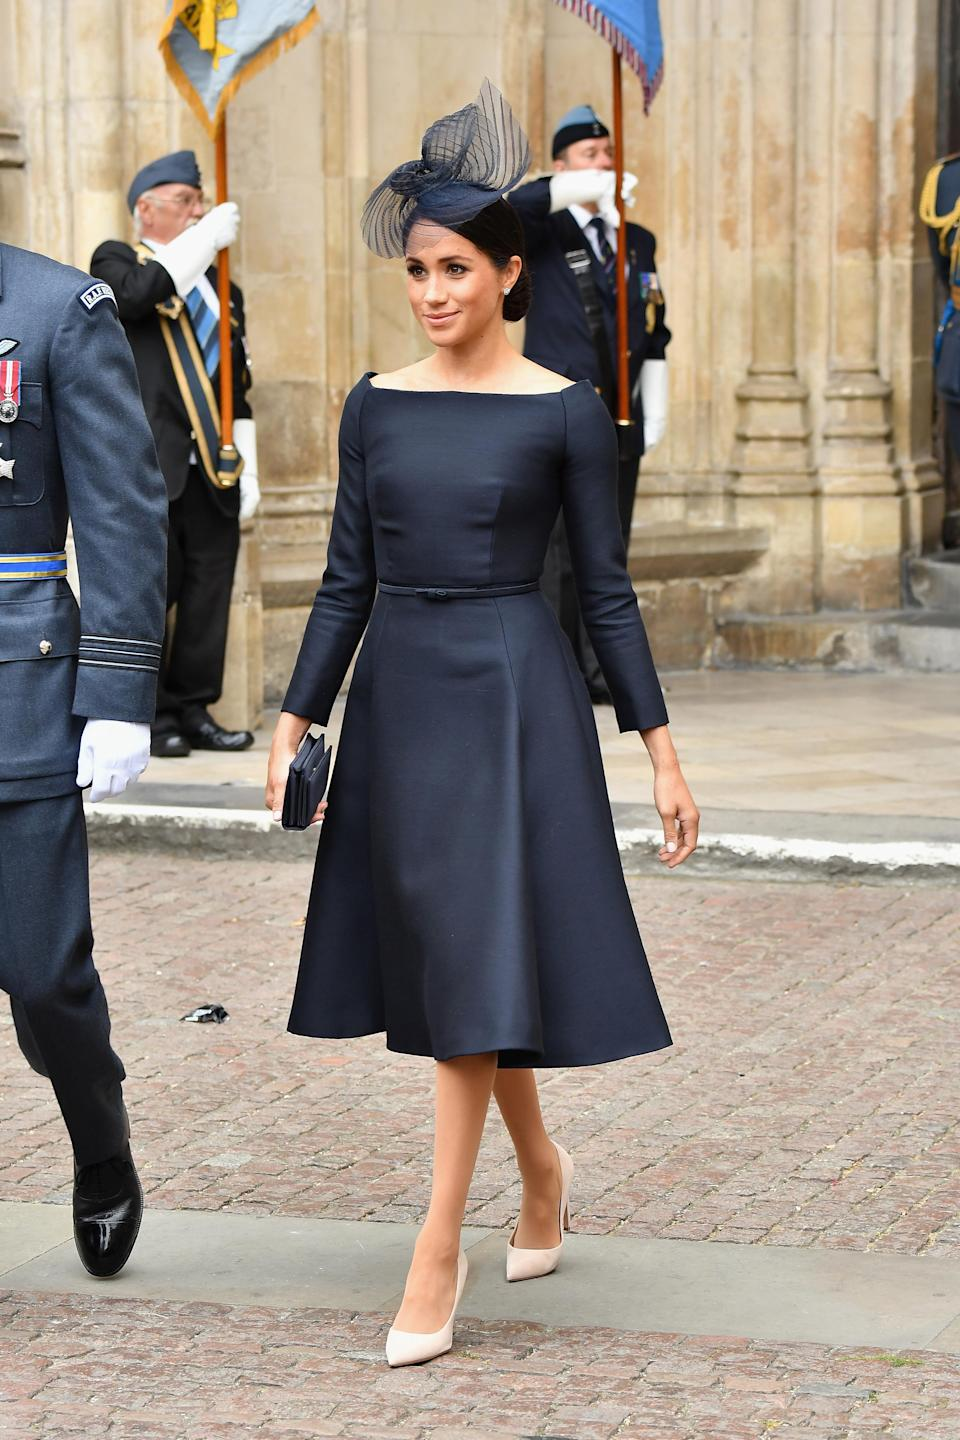 For the Royal Air Force's centenary celebrations on July 10, the Duchess of Sussex opted for a Dior dress which featured a Fifties fit and flared skirt [Photo: PA]